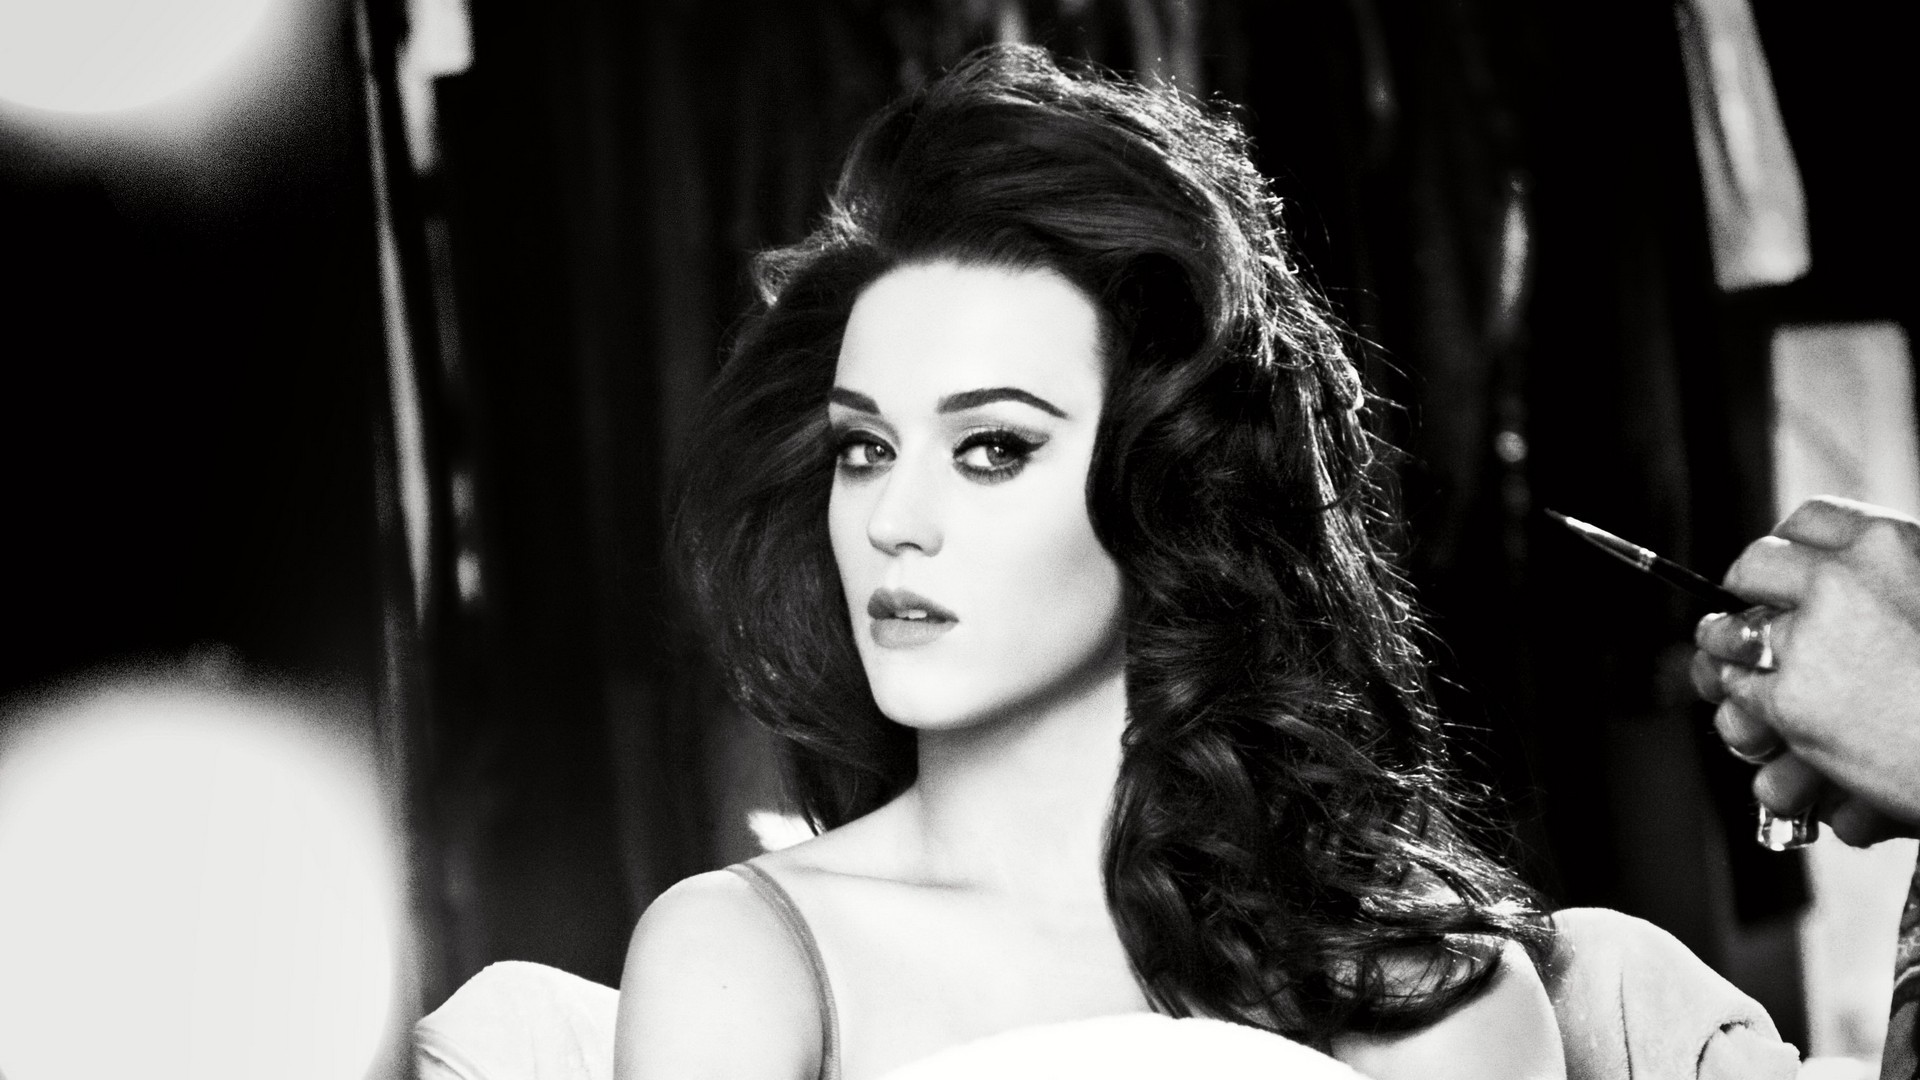 Preview wallpaper katy perry, eyes, face, singer, black and white 1920×1080